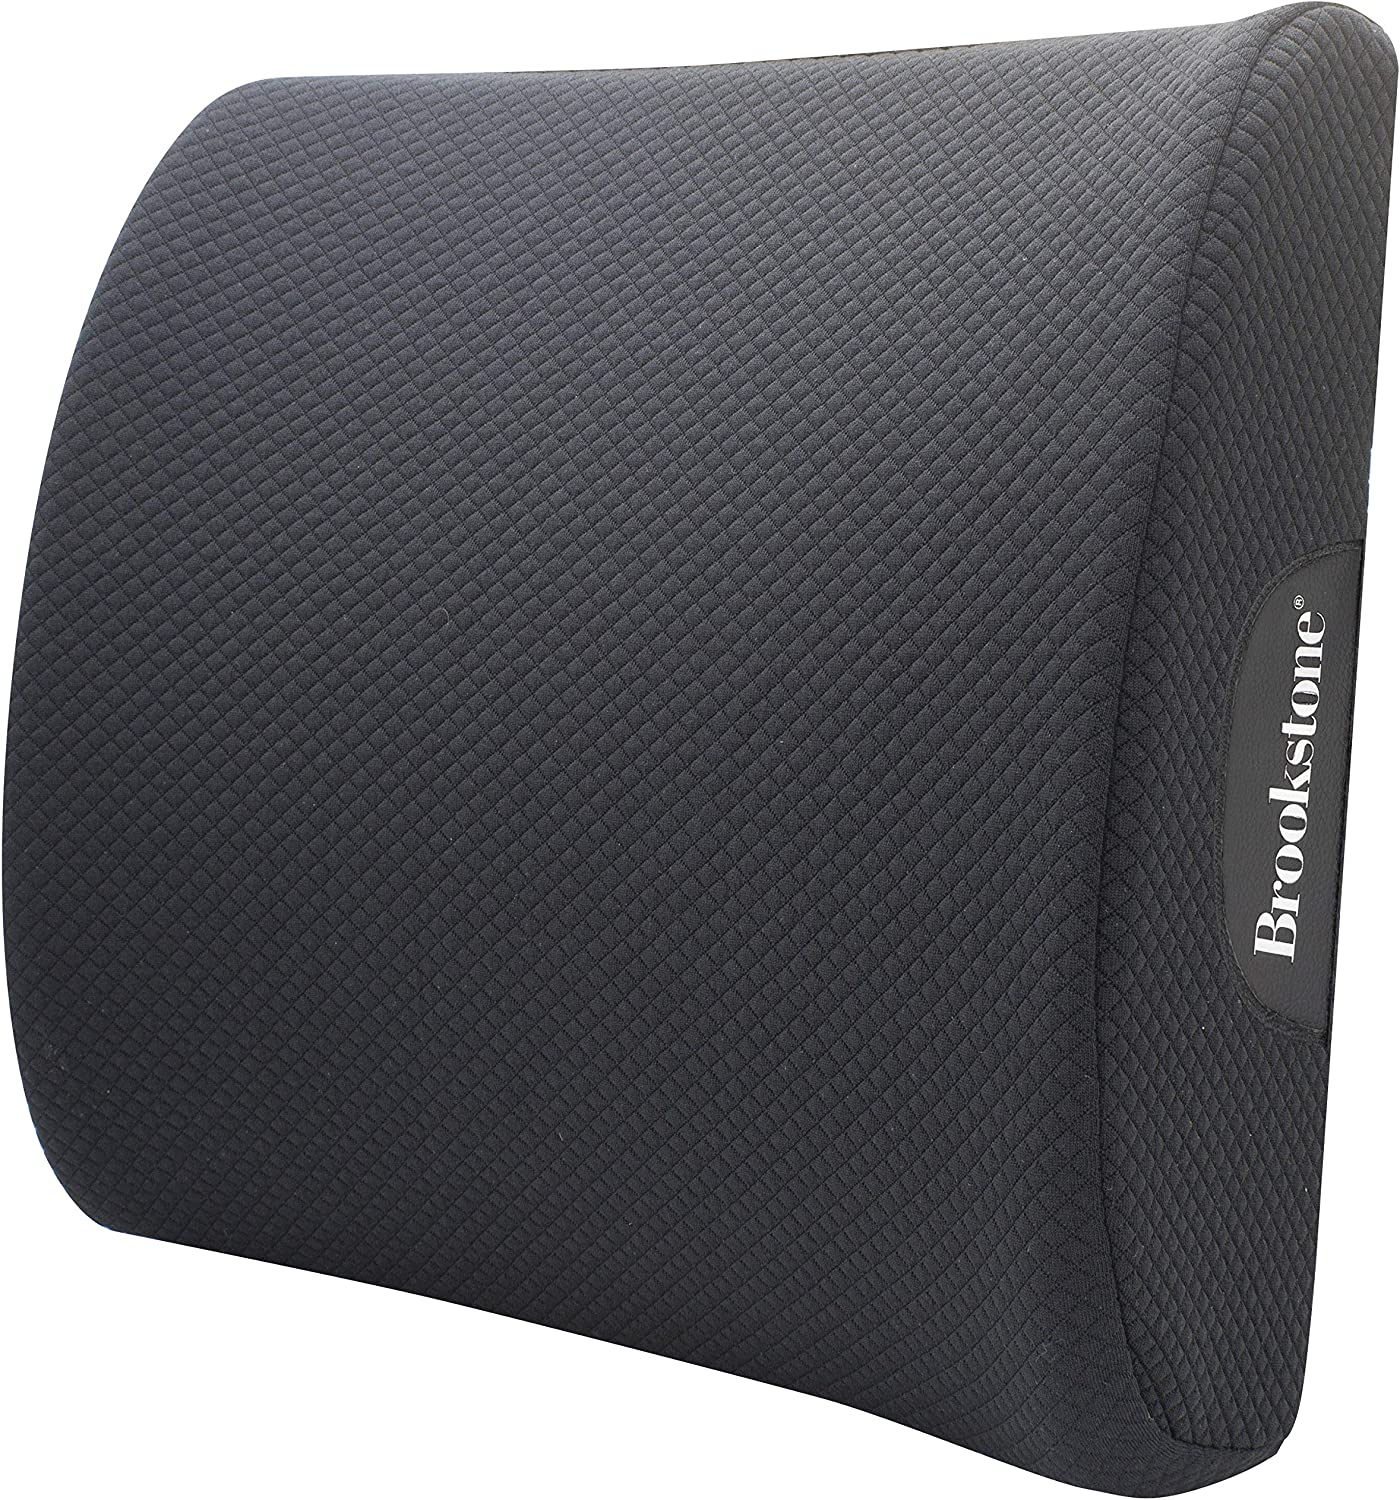 Brookstone - Luxurious Lumbar Support Pillow for Car or Office Chair, Back Cushion with Premium Grade Memory Foam, Breathable and Washable Cover, Adjustable Strap